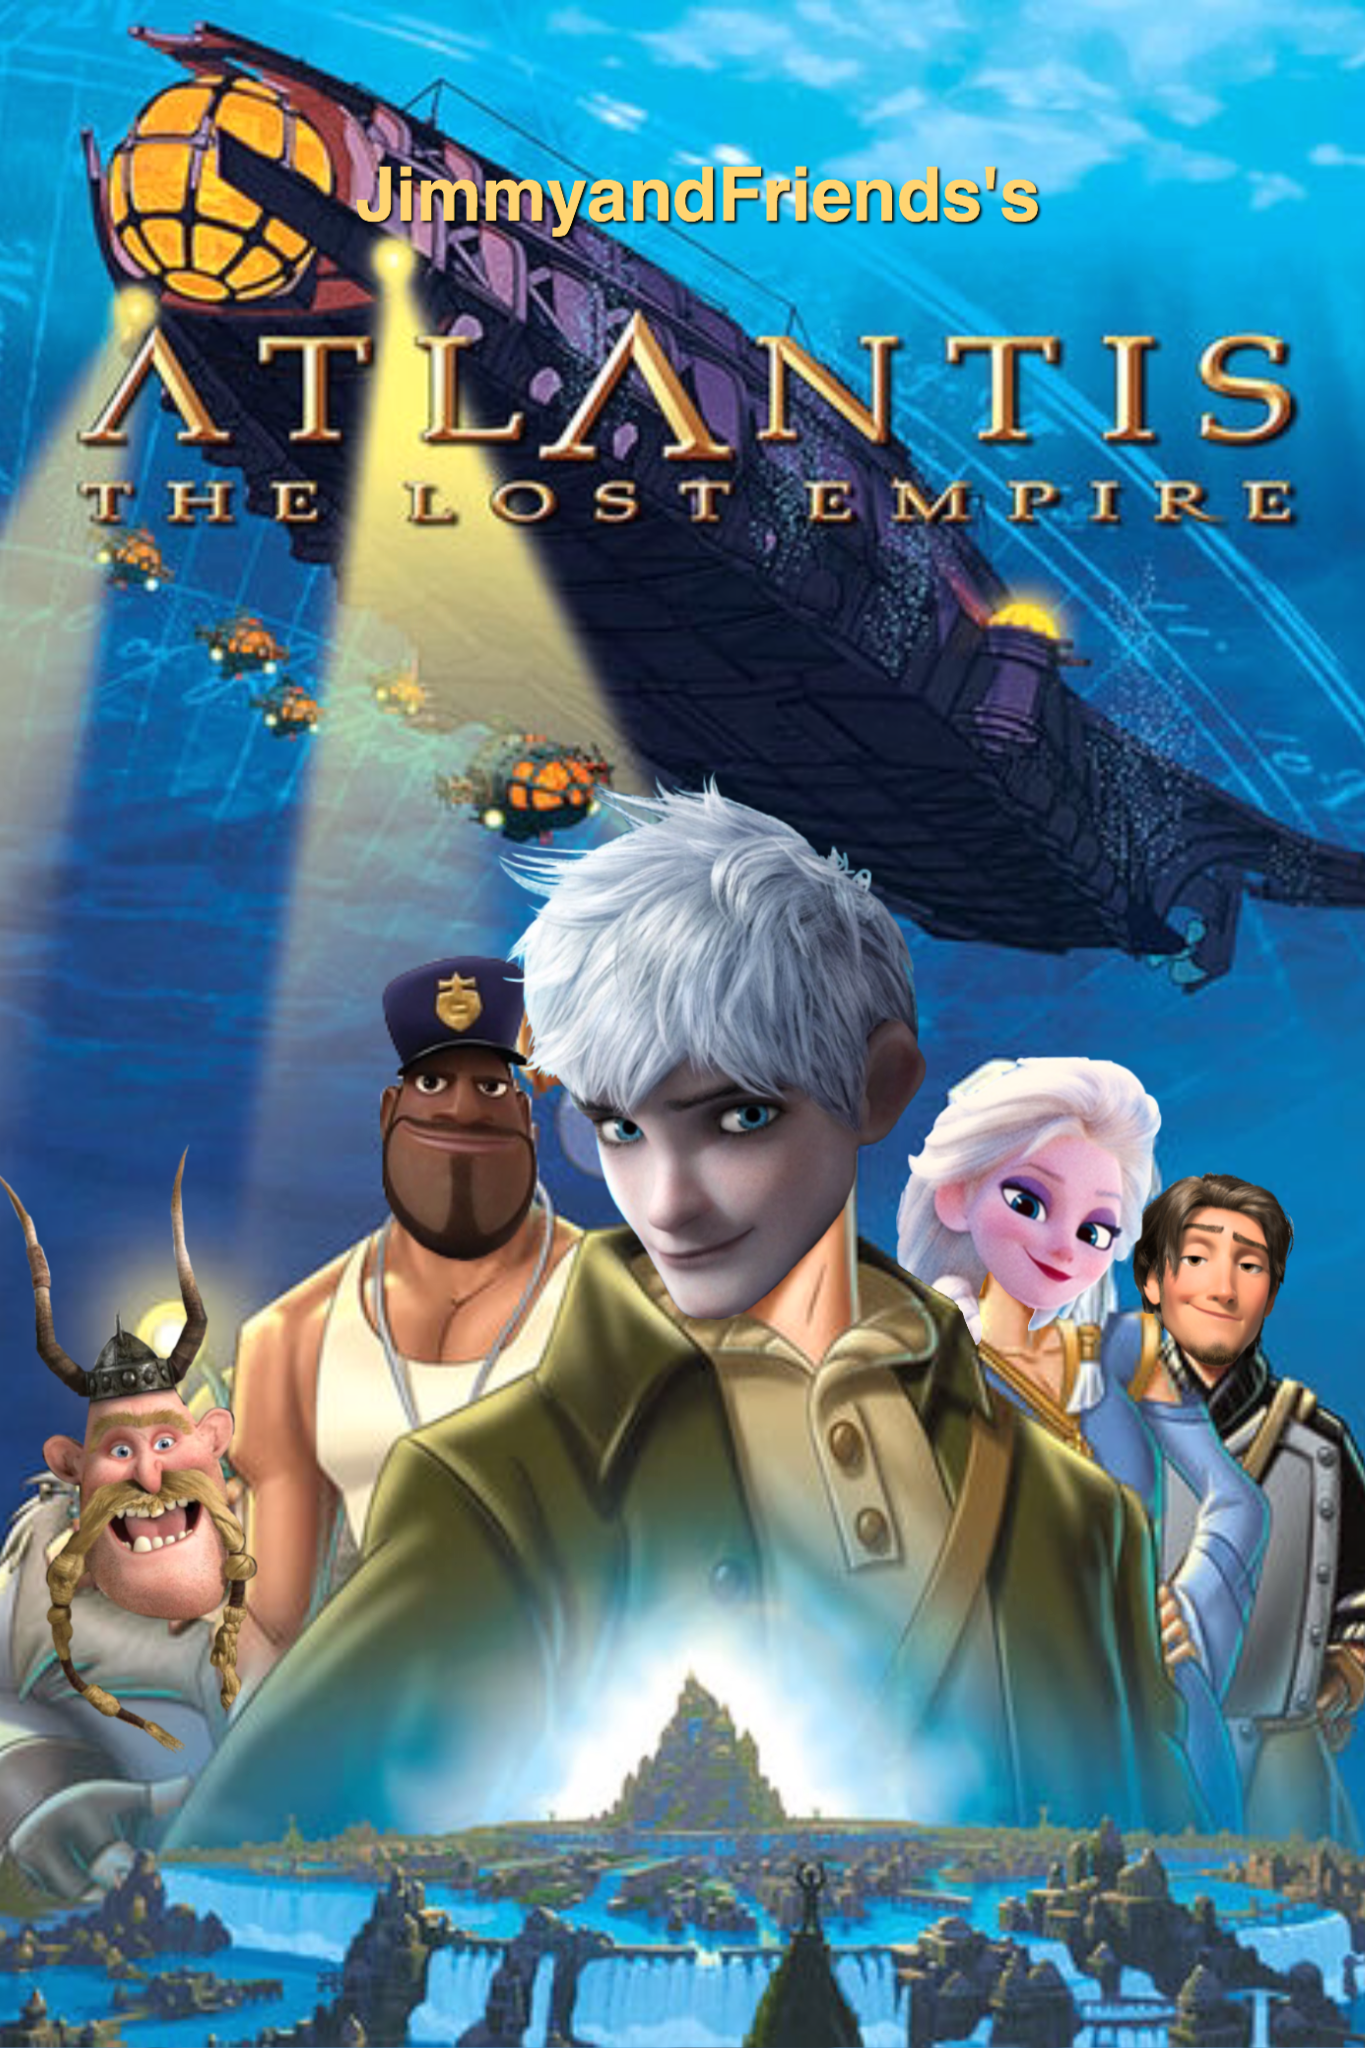 Atlantis: The Lost Empire (JimmyandFriends Style)   The ...